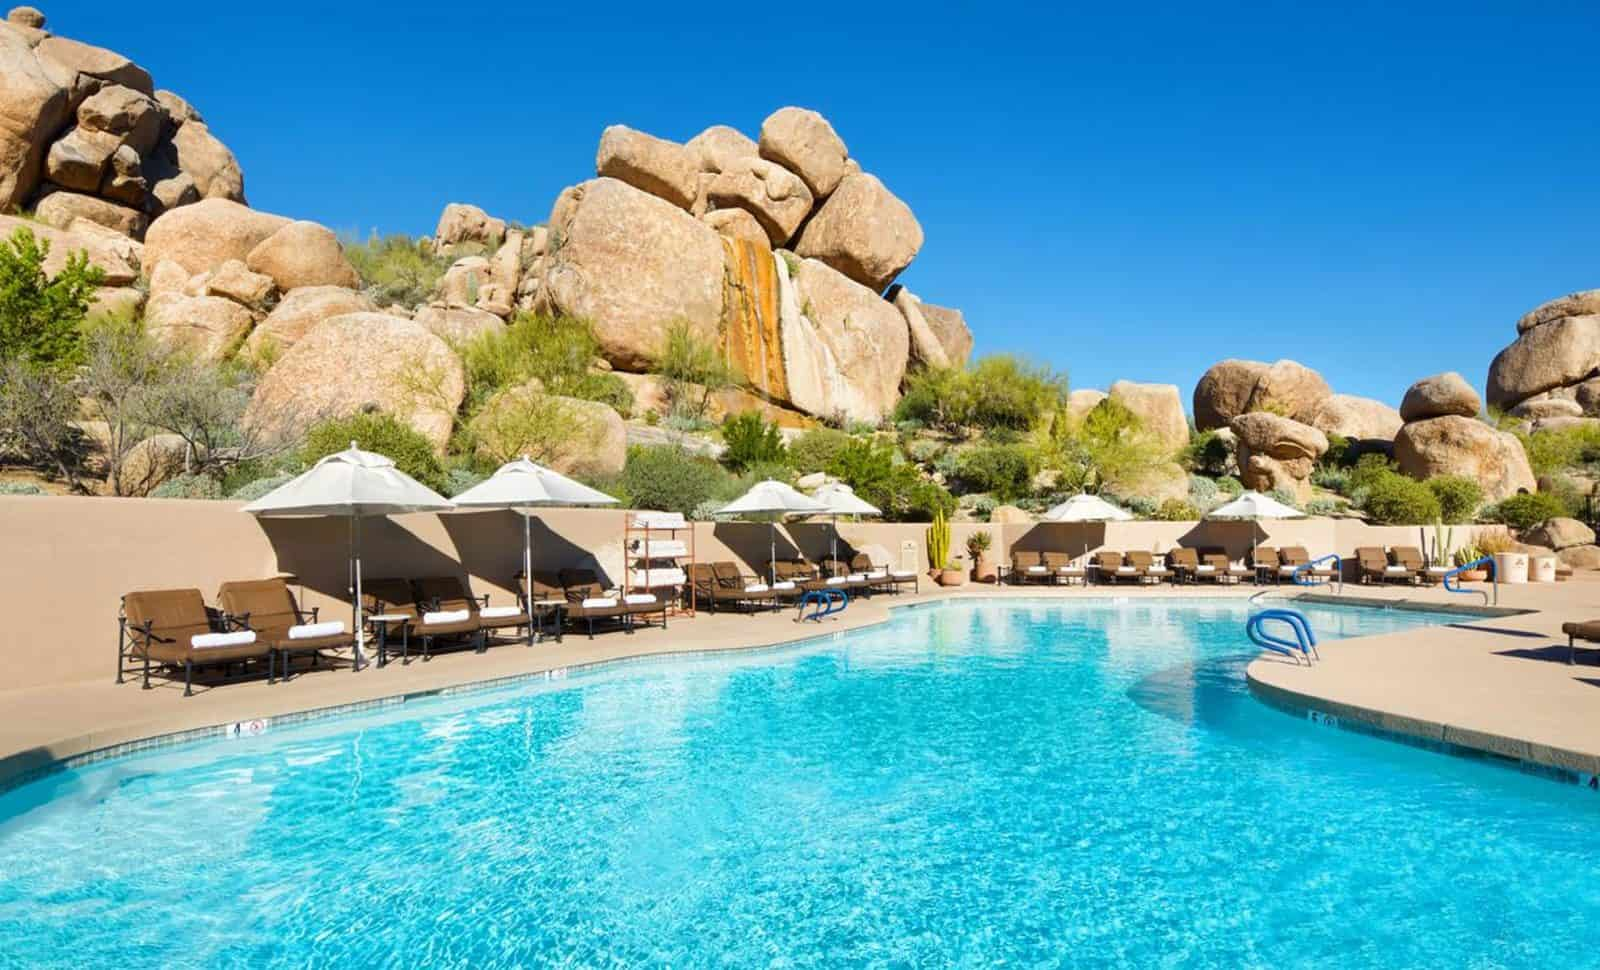 Boulders resort swimming pool and loungers next to rock face